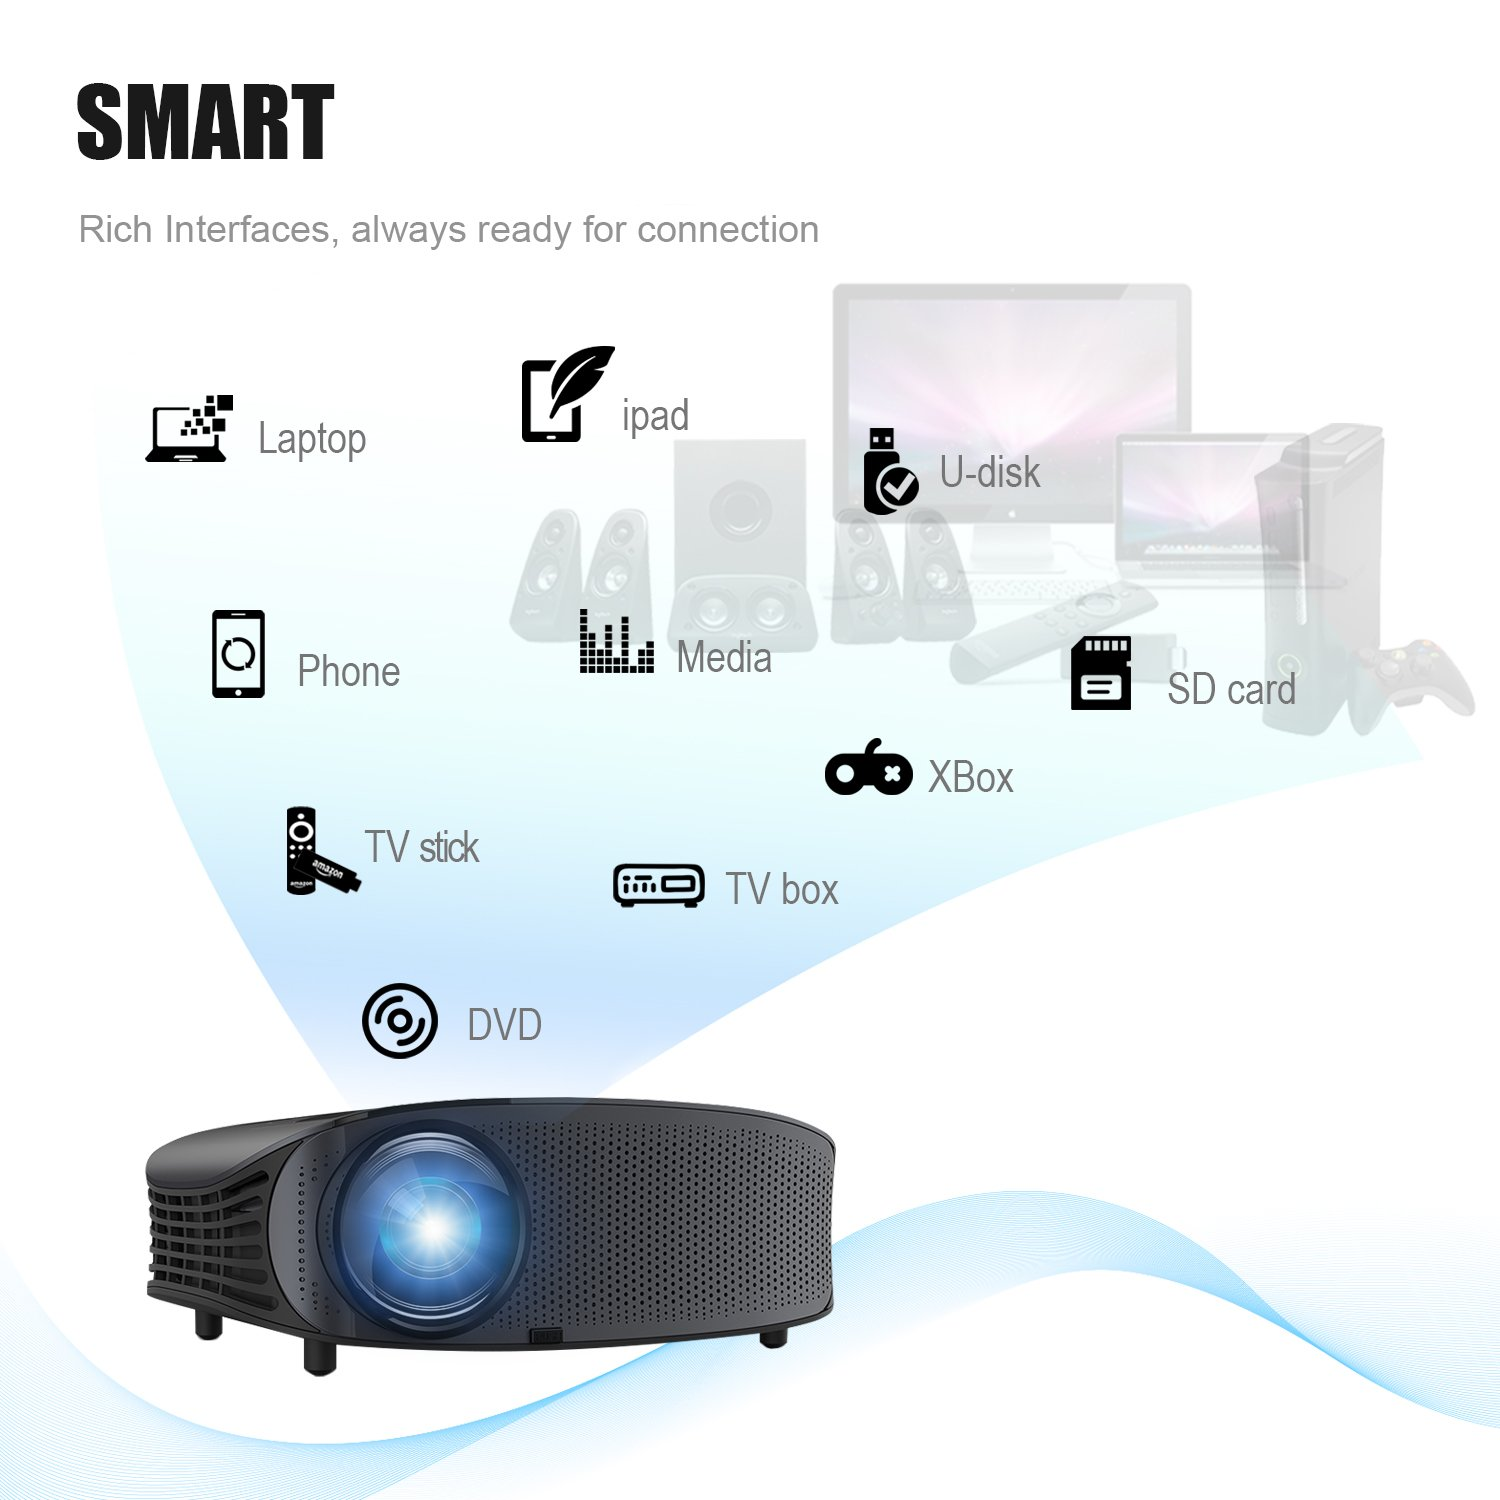 Projector Video Movie Home Theater 3500 lumens 1280x800 Native Resolution Support 1080P LED Projector for iPhone Laptop Andriod Smartphone PS4 Xbox TV Box Fire TV WS610 by BeamerKing by BeamerKing (Image #7)